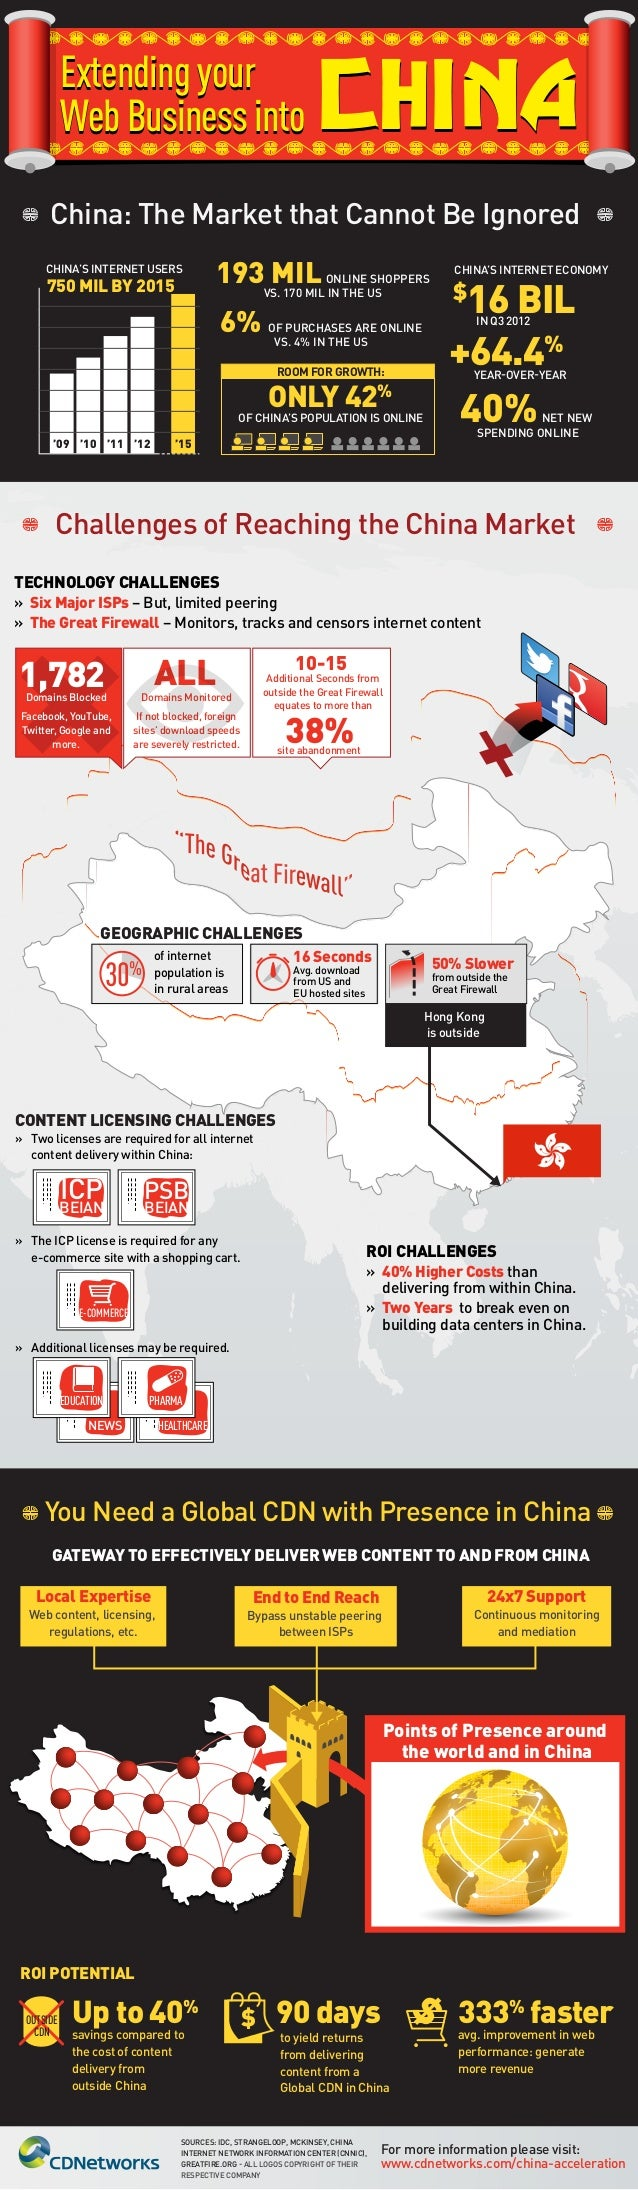 Infograph: Extending Your Web Business into China